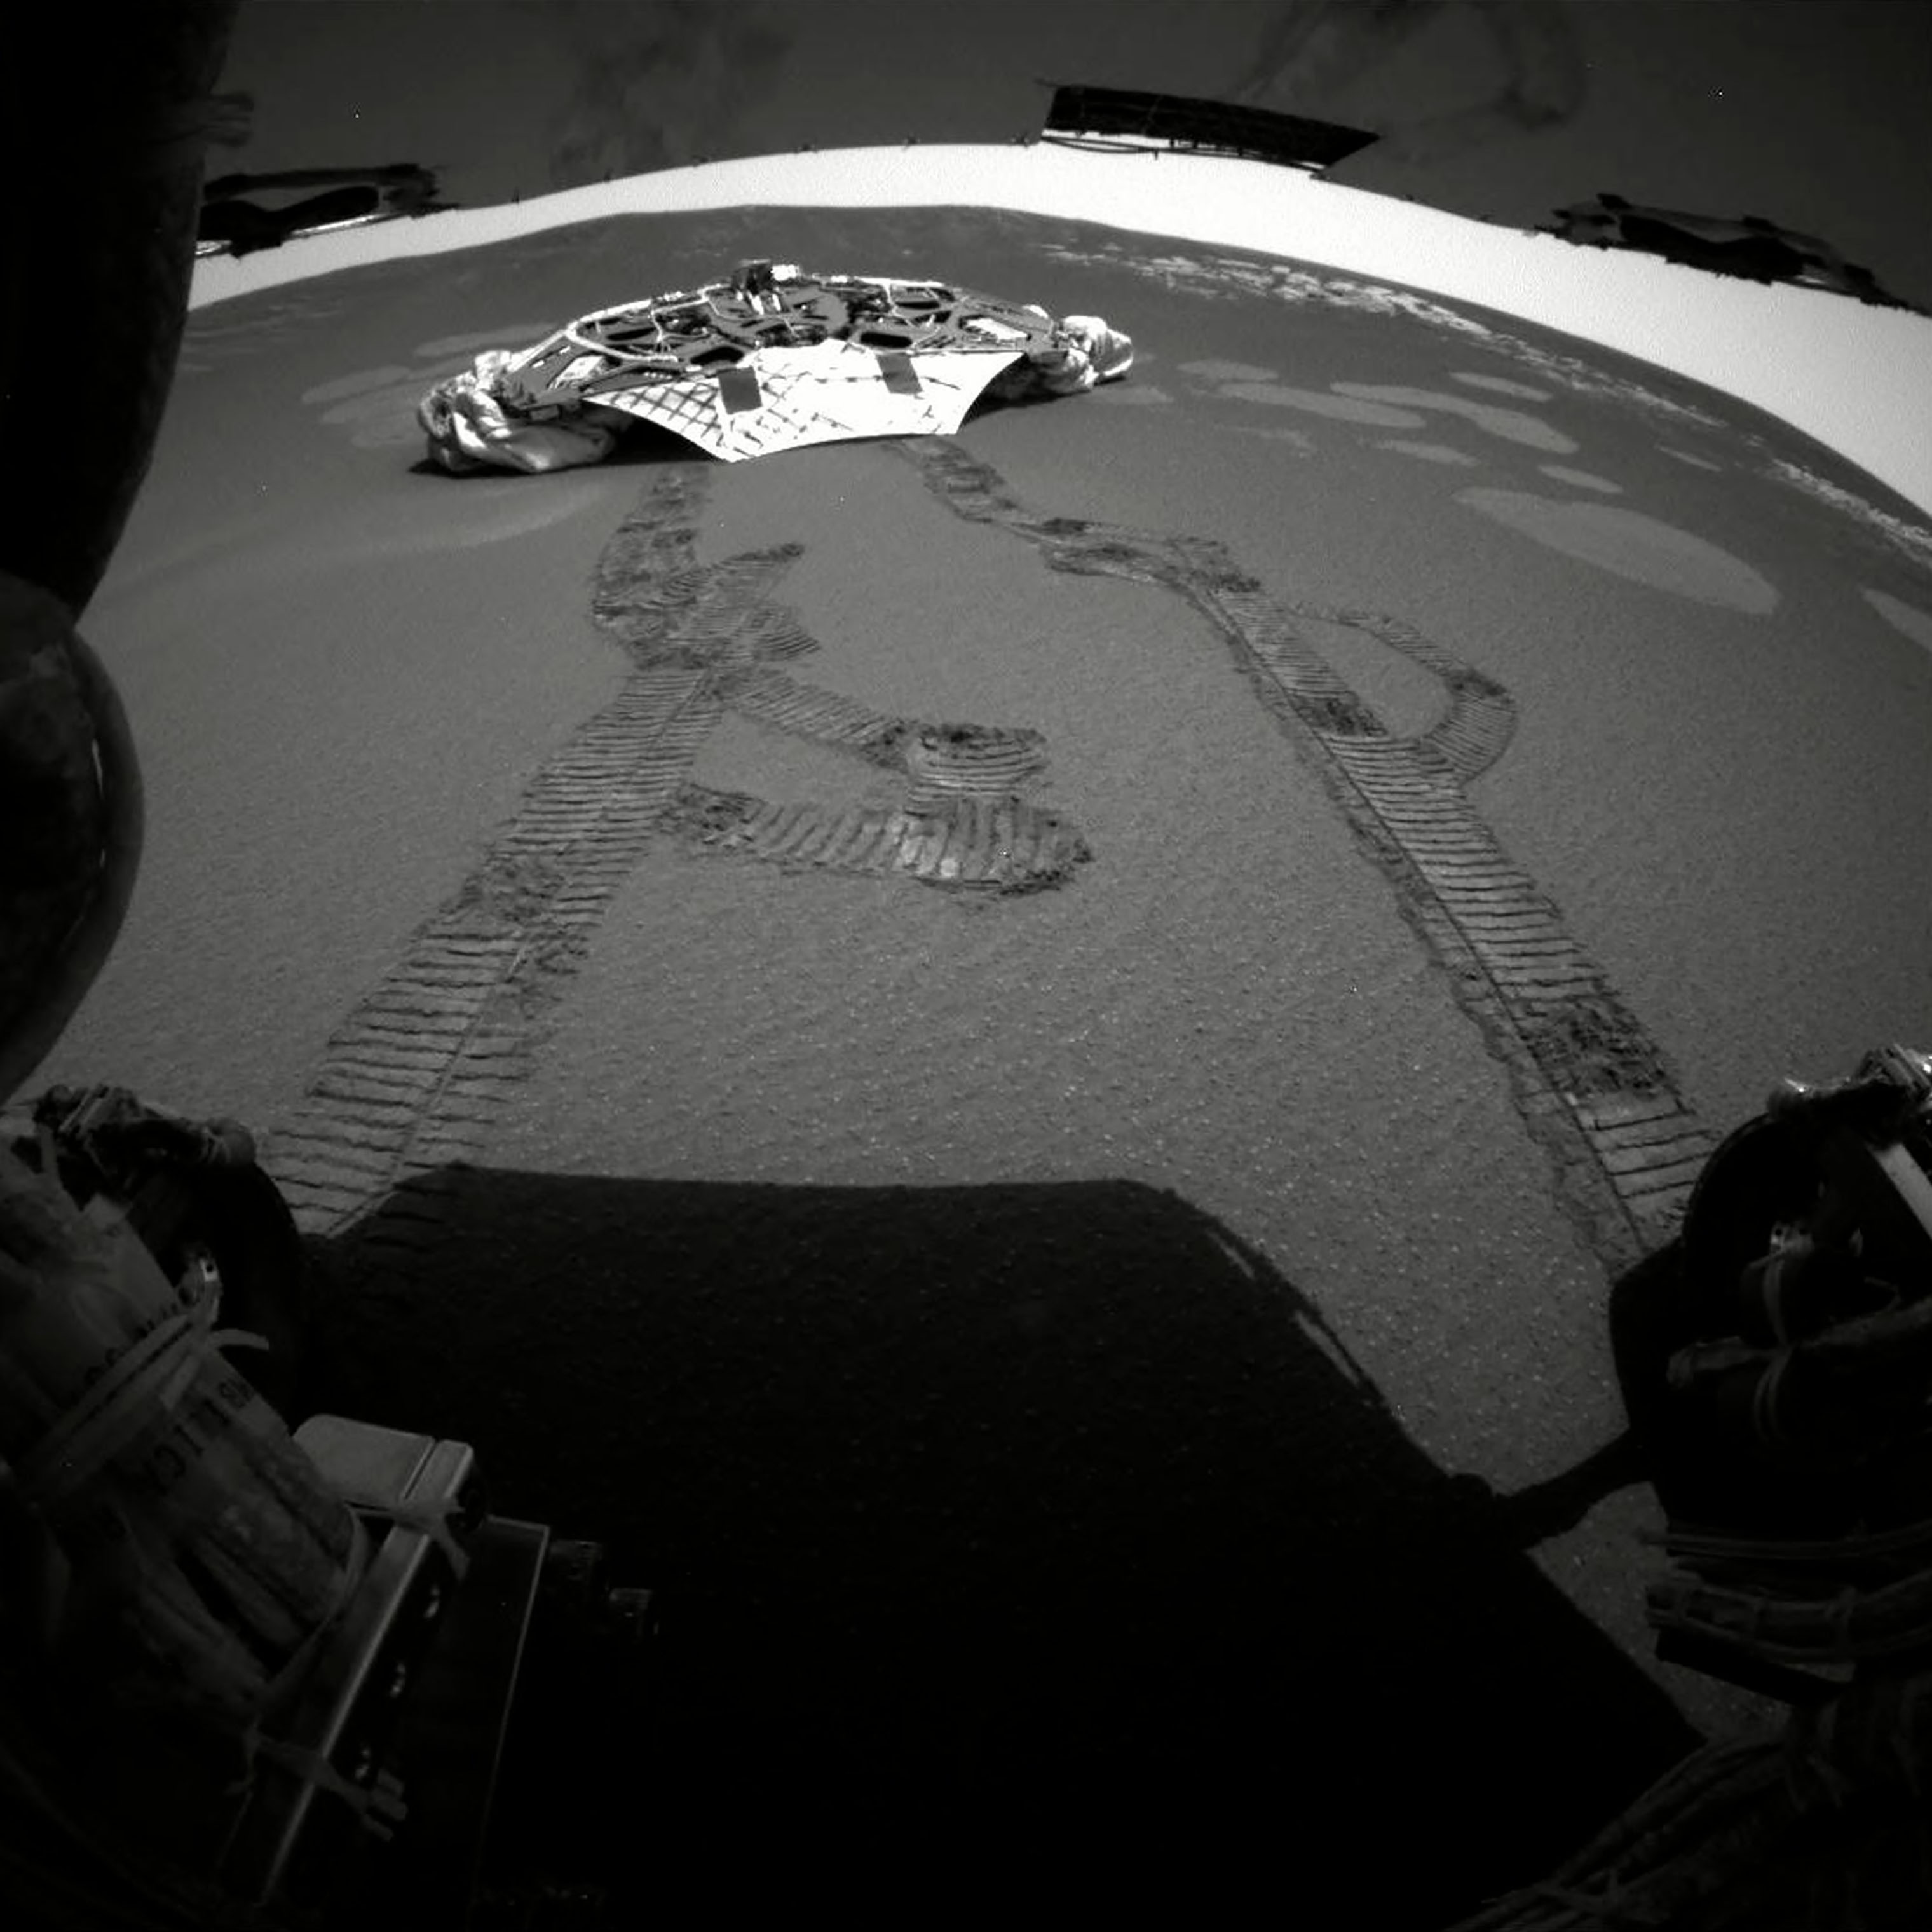 This photograph made by one of the rear hazard-avoidance cameras on Opportunity rover in February 2004 shows its landing platform, with freshly made tracks leading away from it.